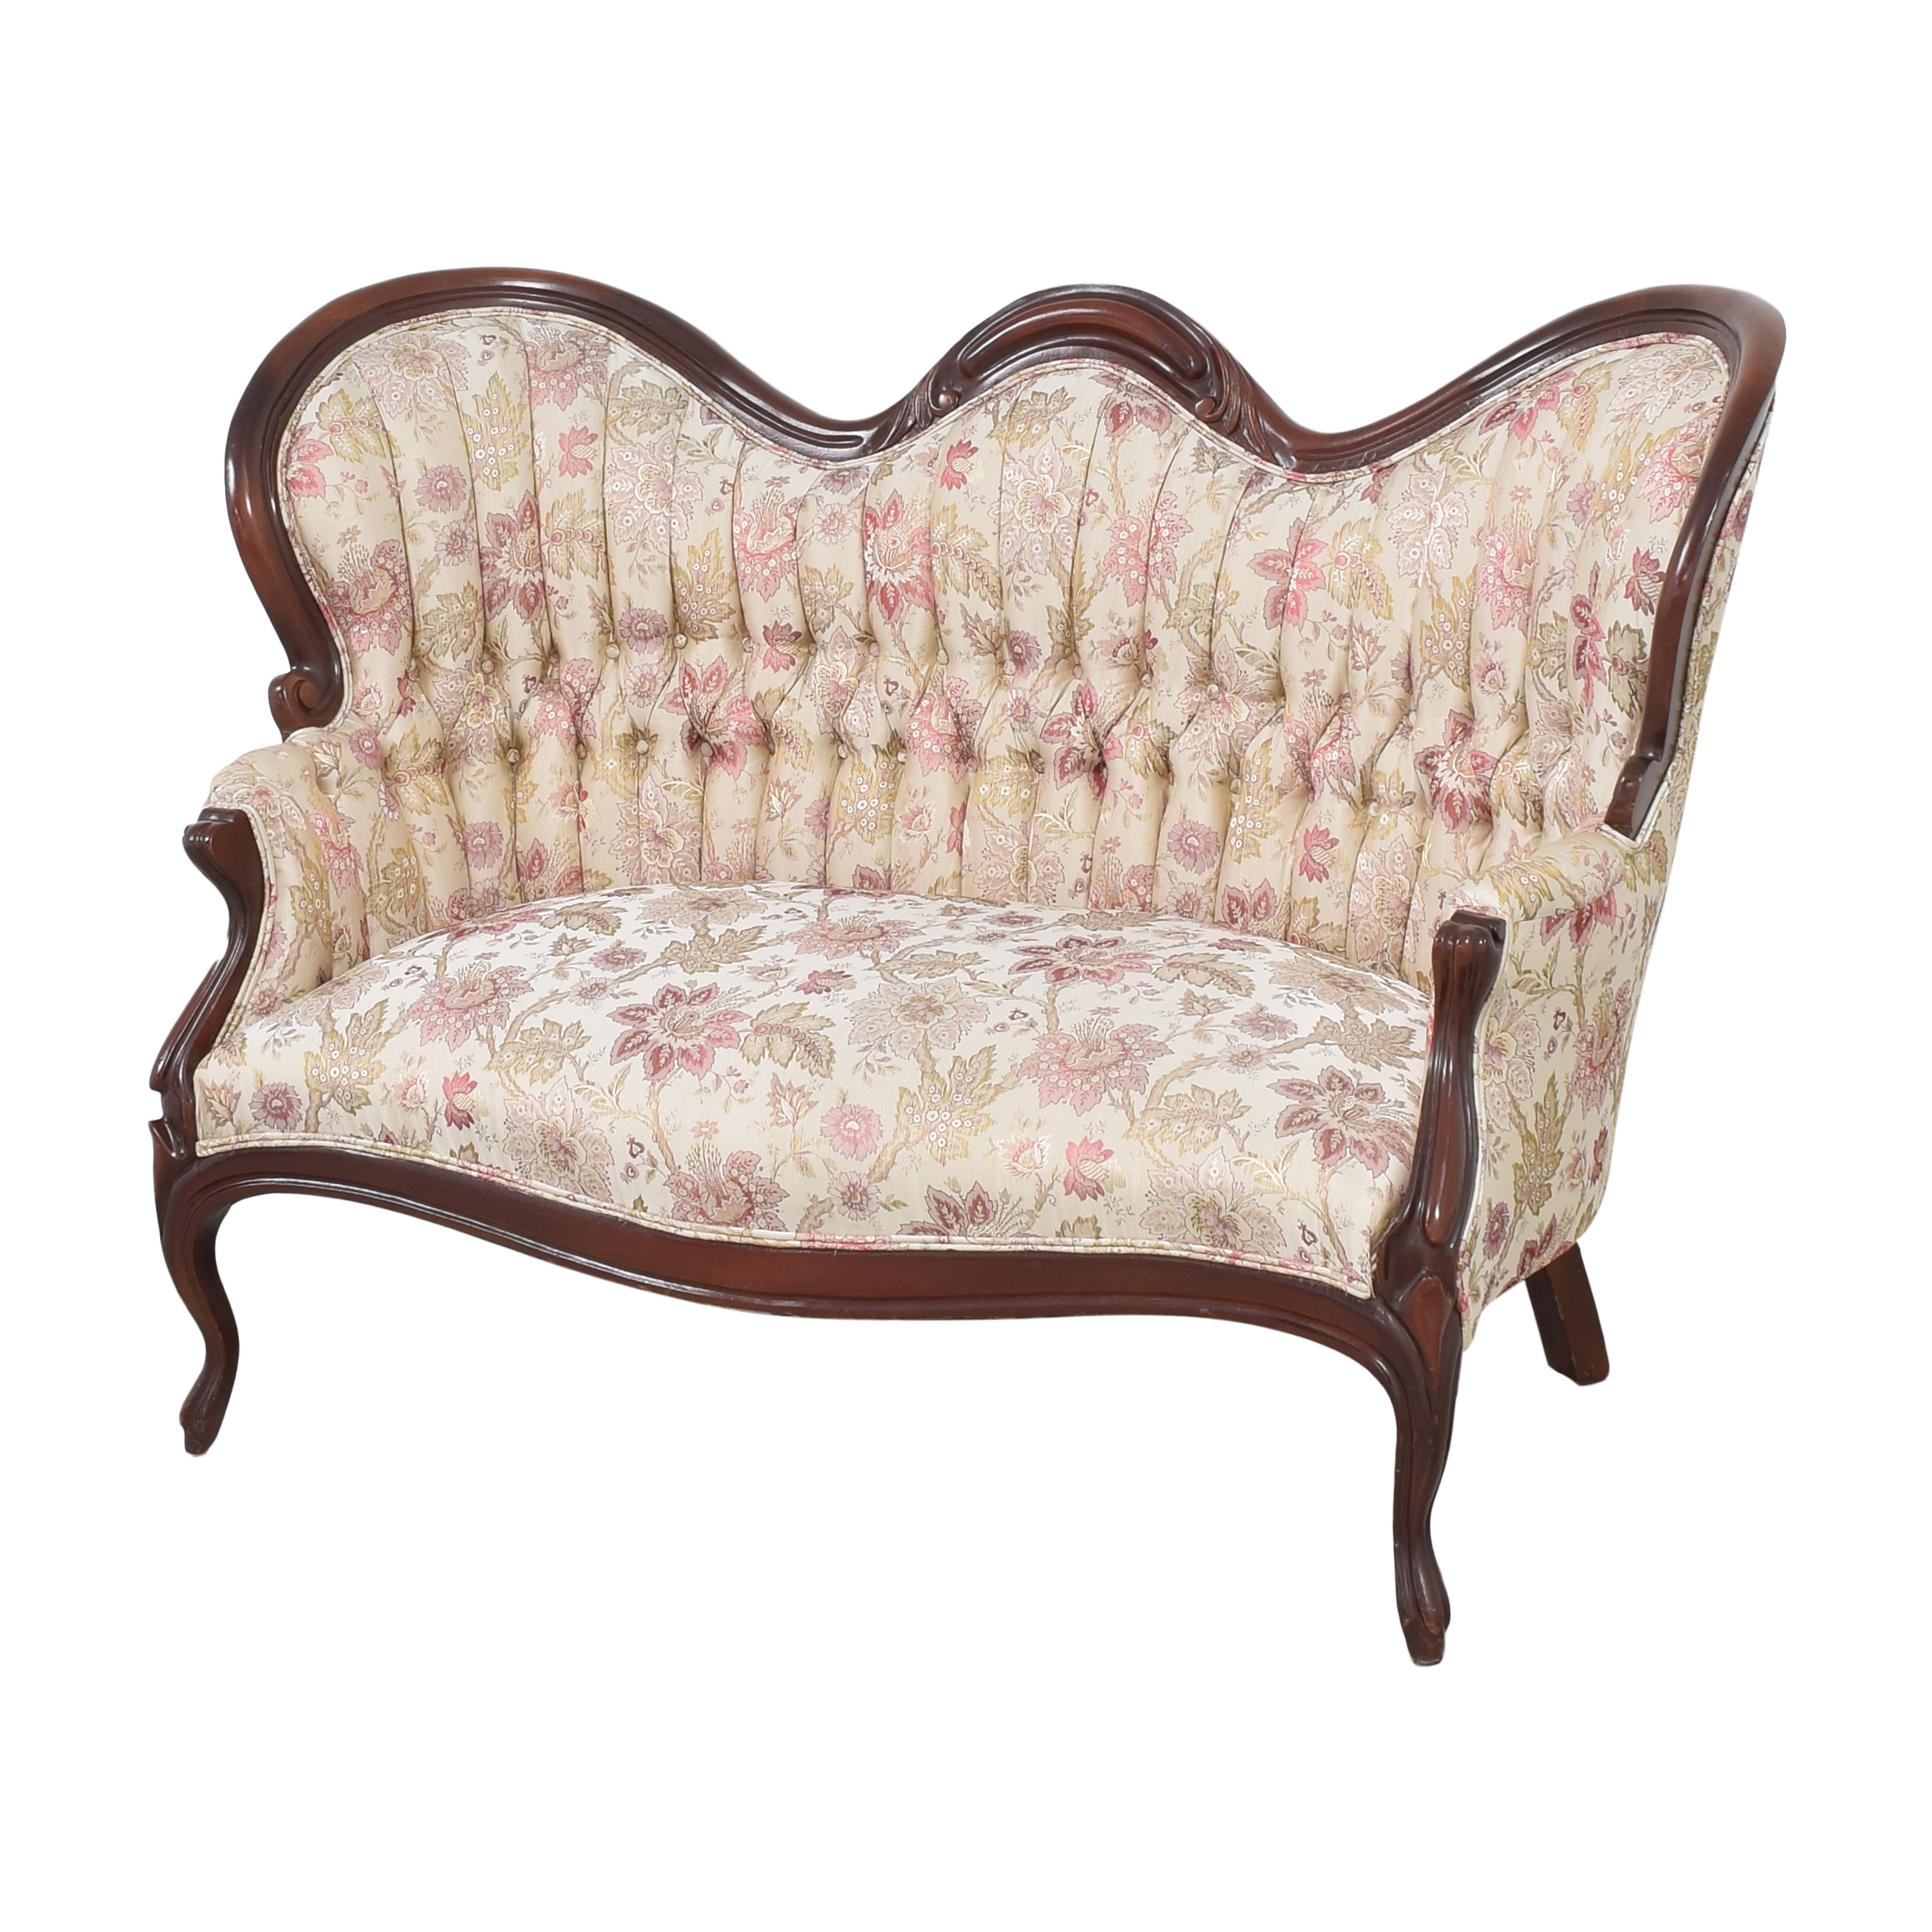 Vintage Victorian-Style Settee for sale